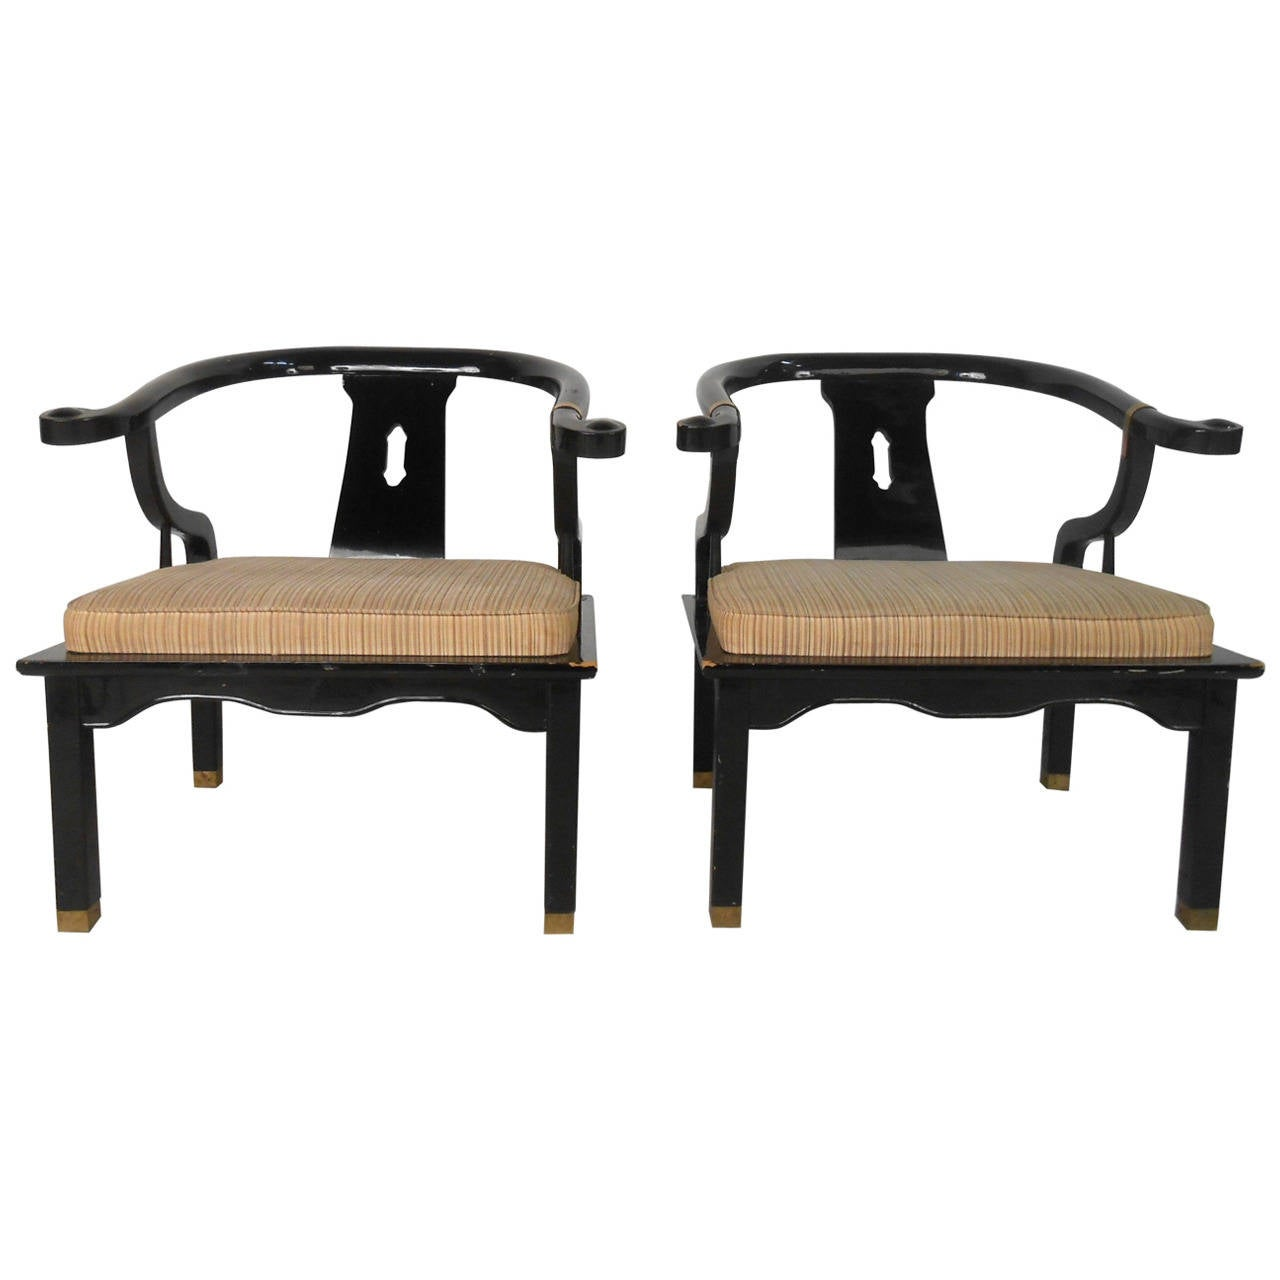 Pair Mid-Century Modern James Mont Style Black Lacquer Armchairs by Century